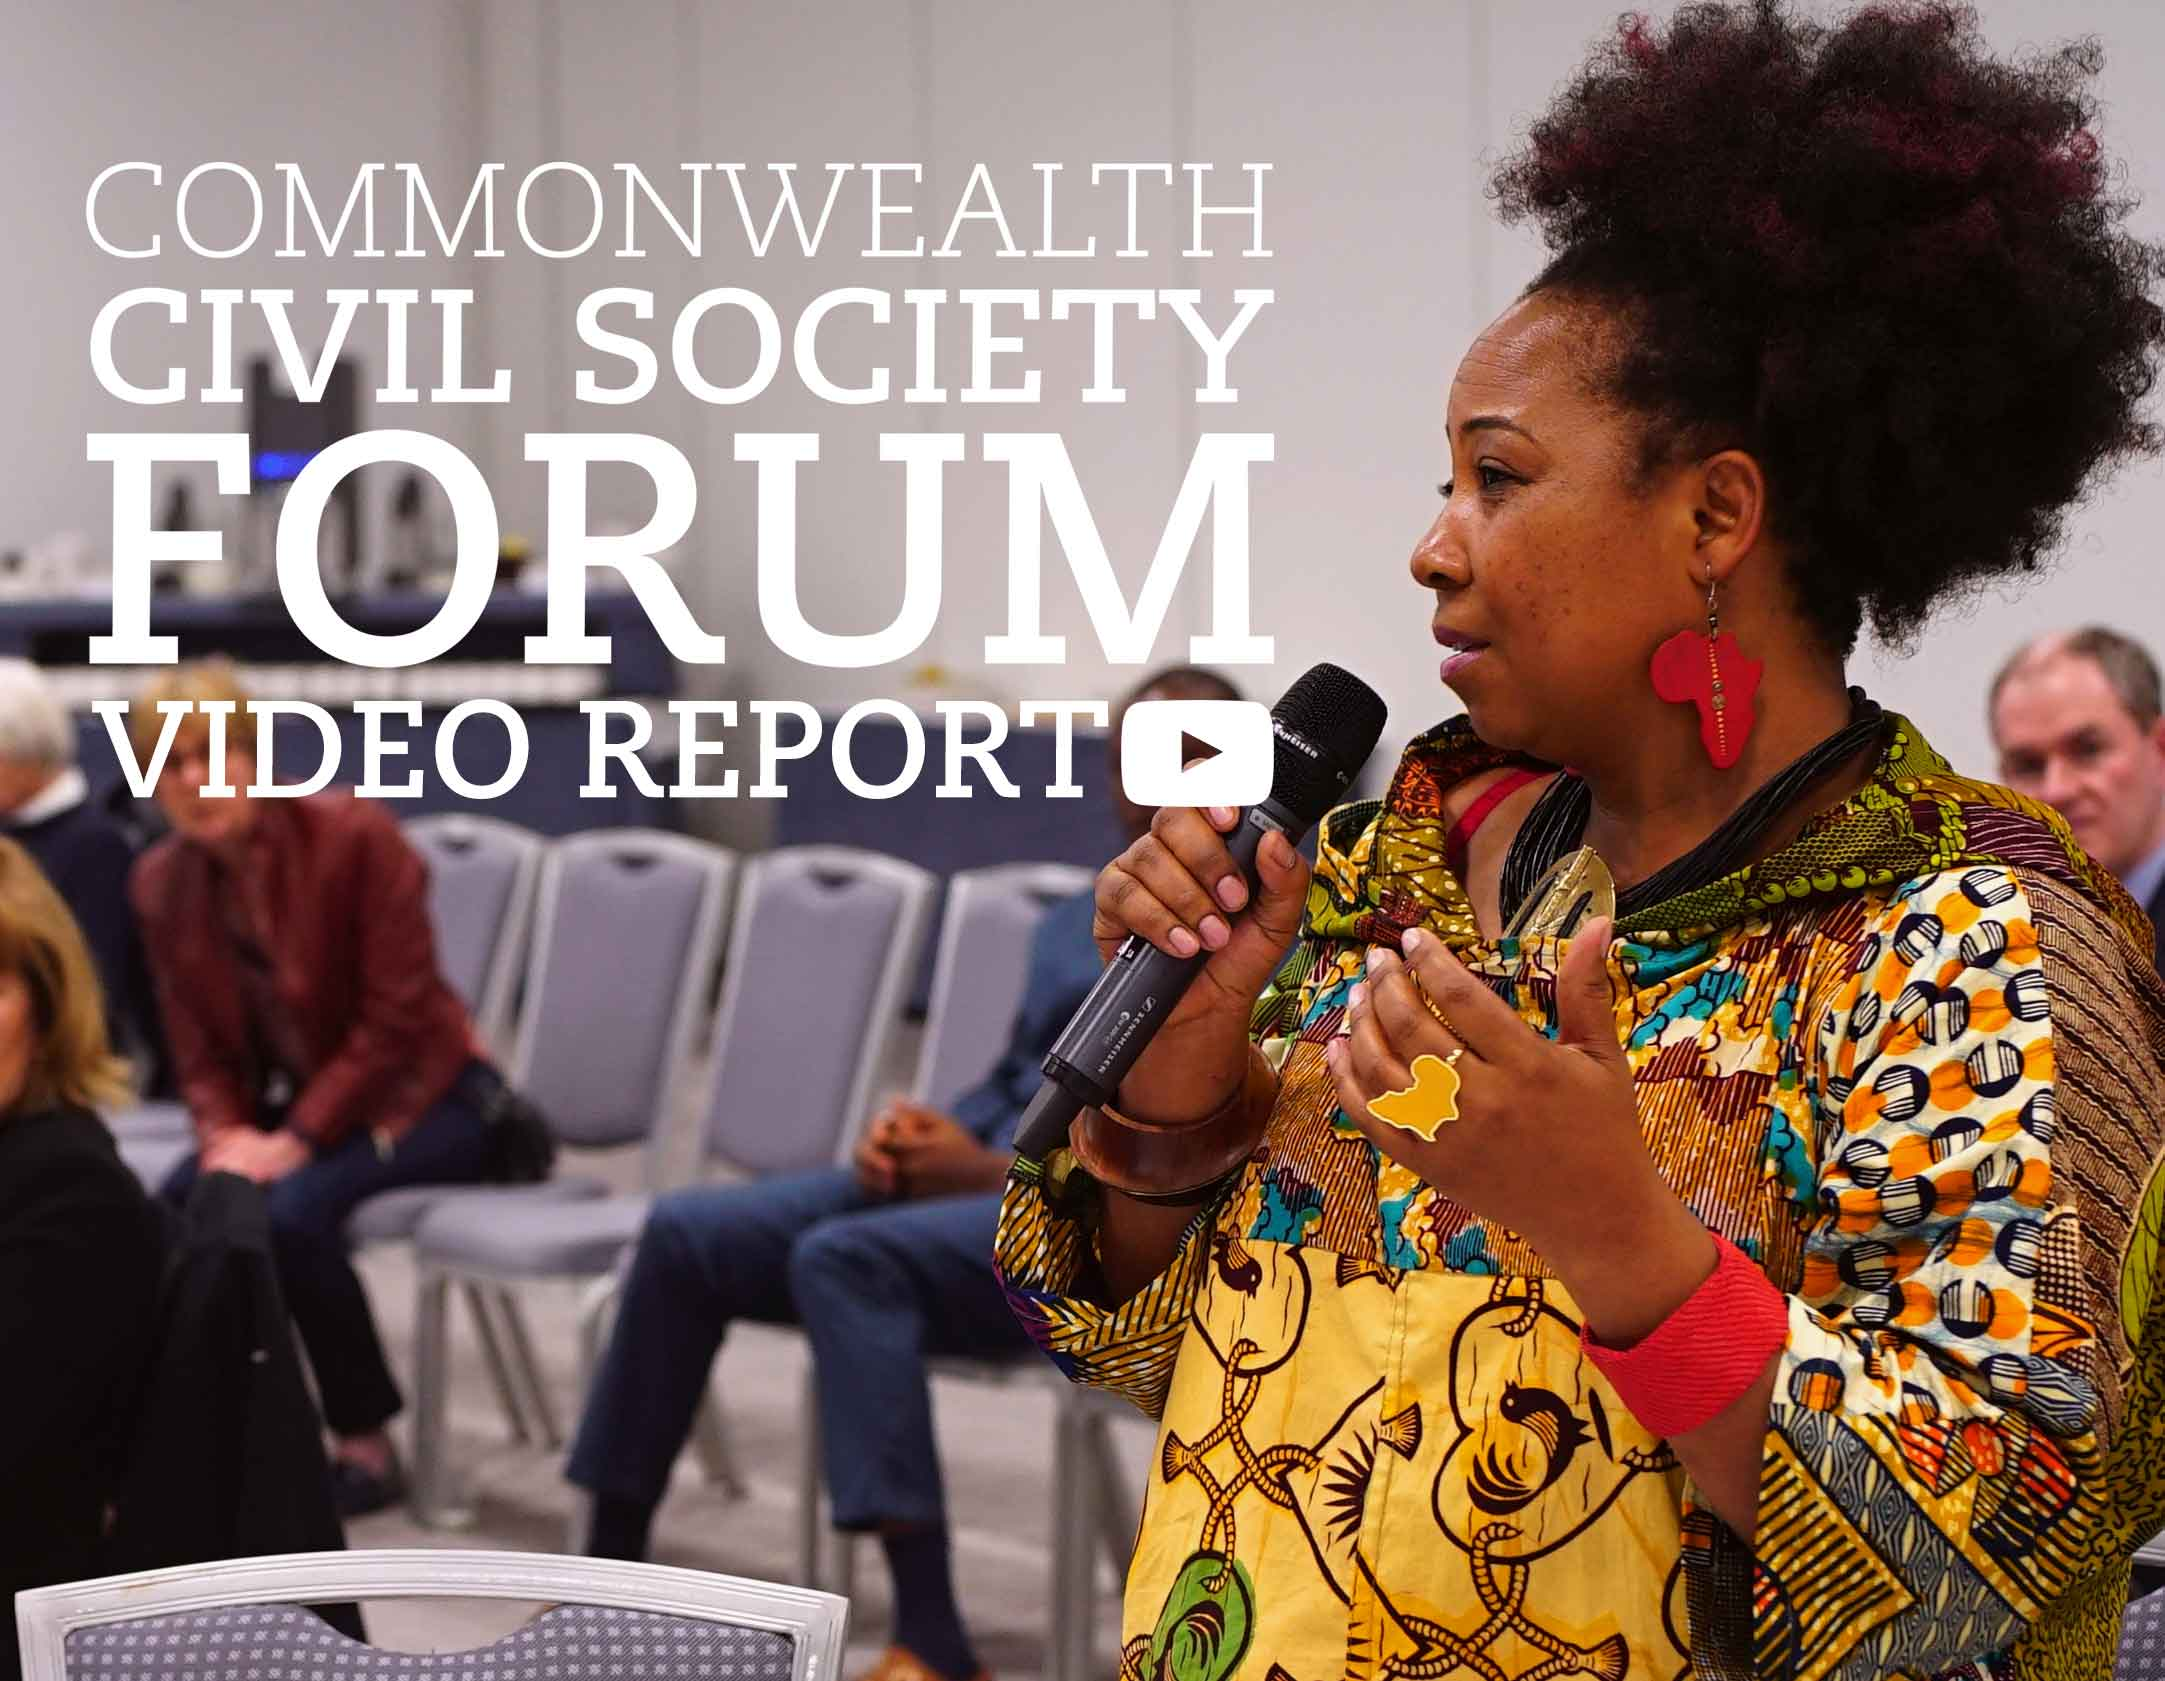 Video Report: The Commonwealth Civil Society Forum took place last month. What's it all about?